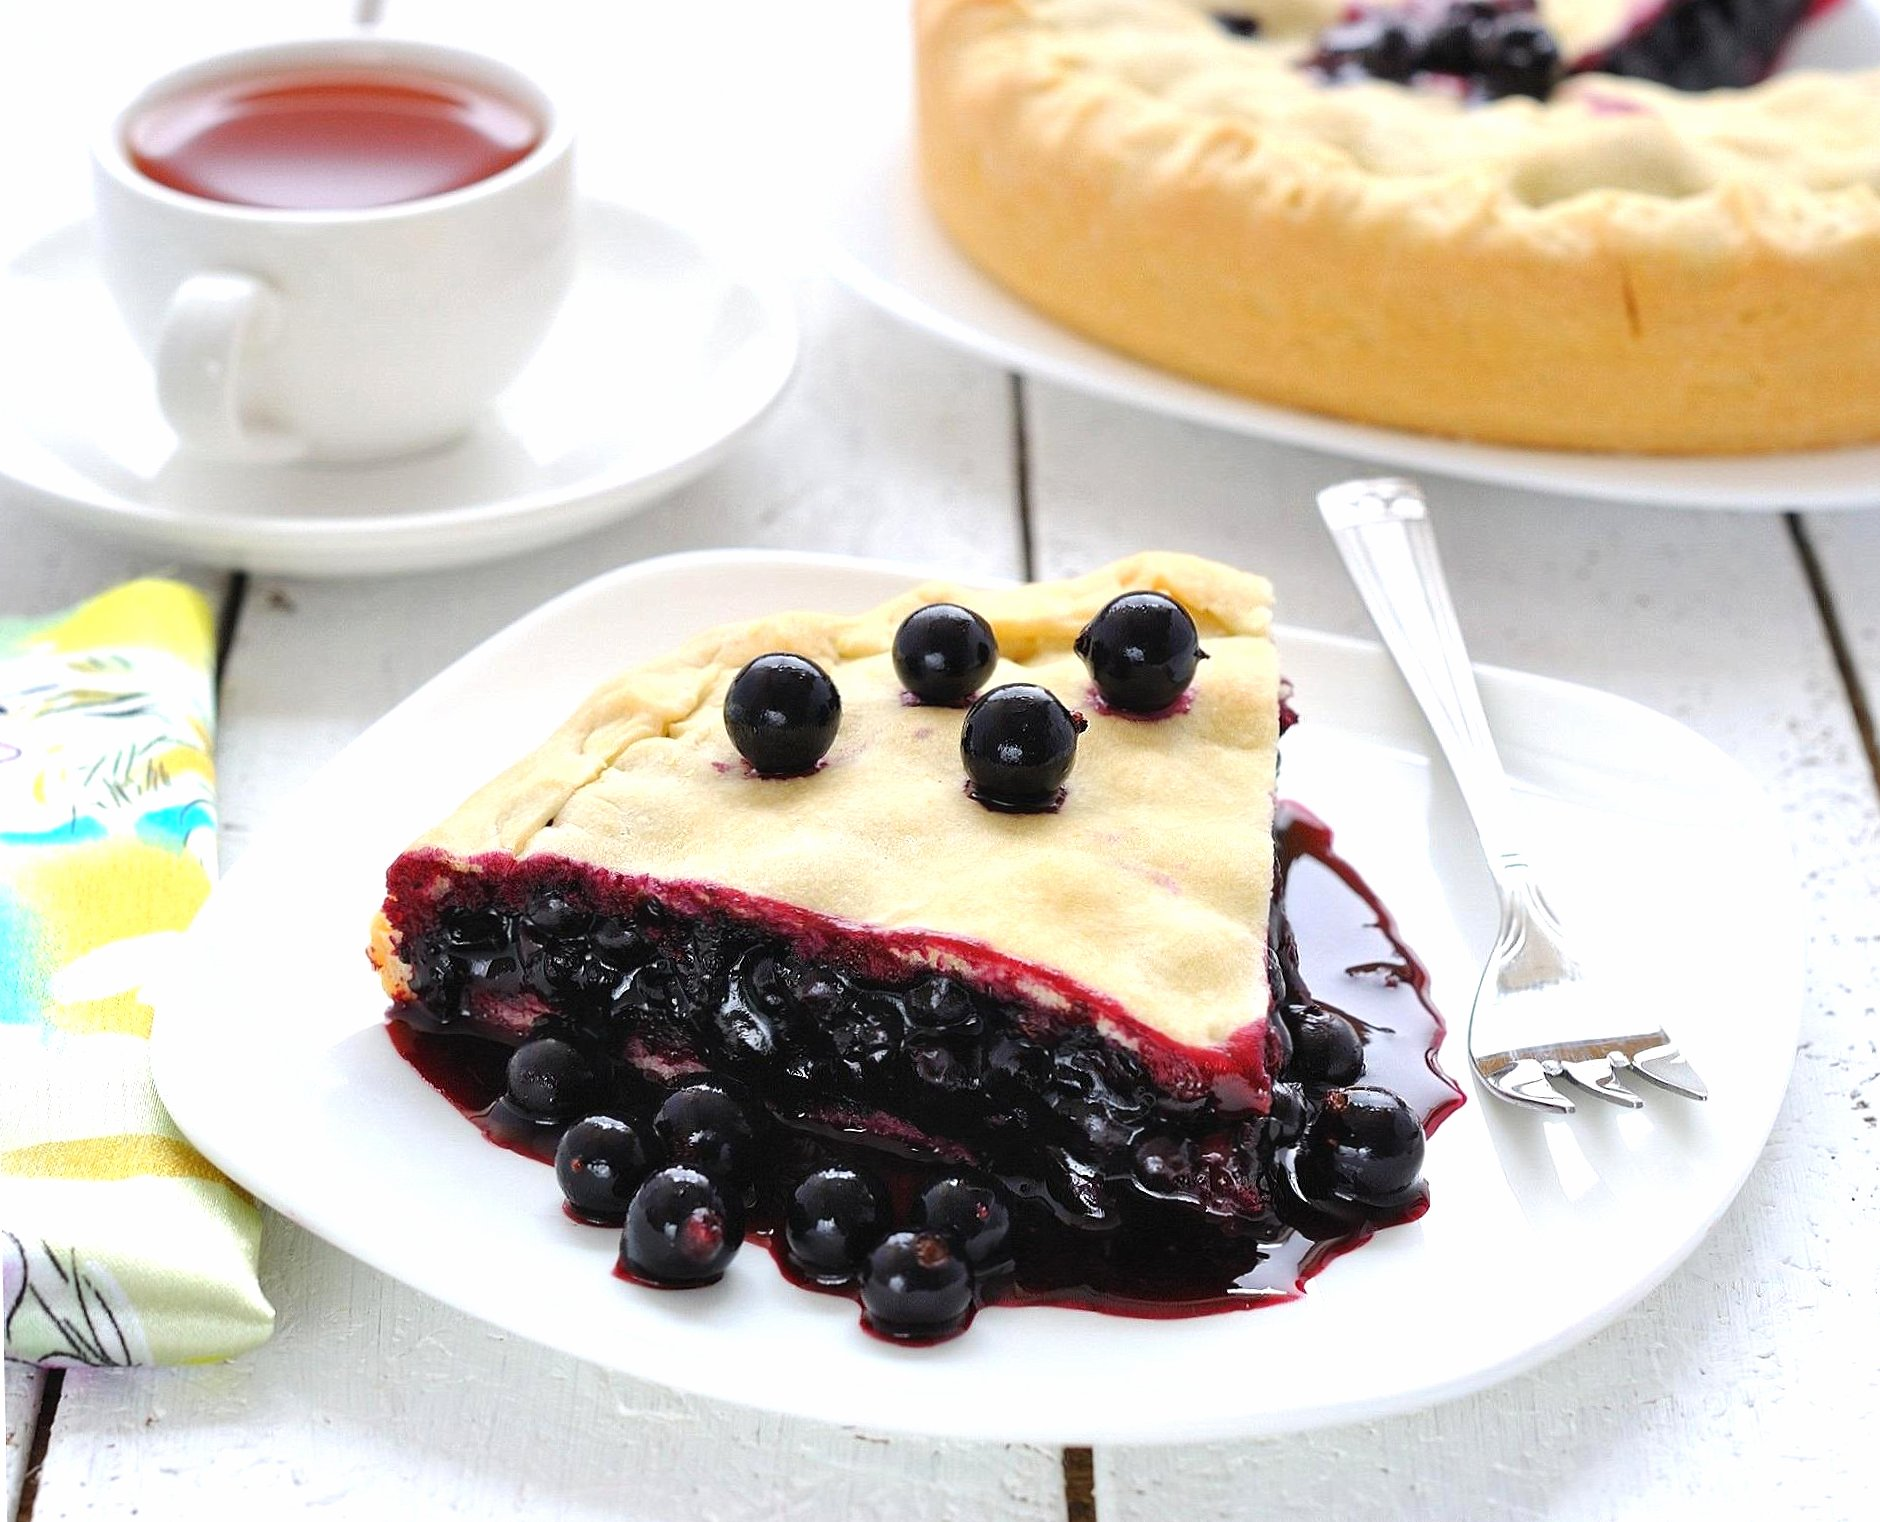 Blackcurrant pie wallpapers HD quality